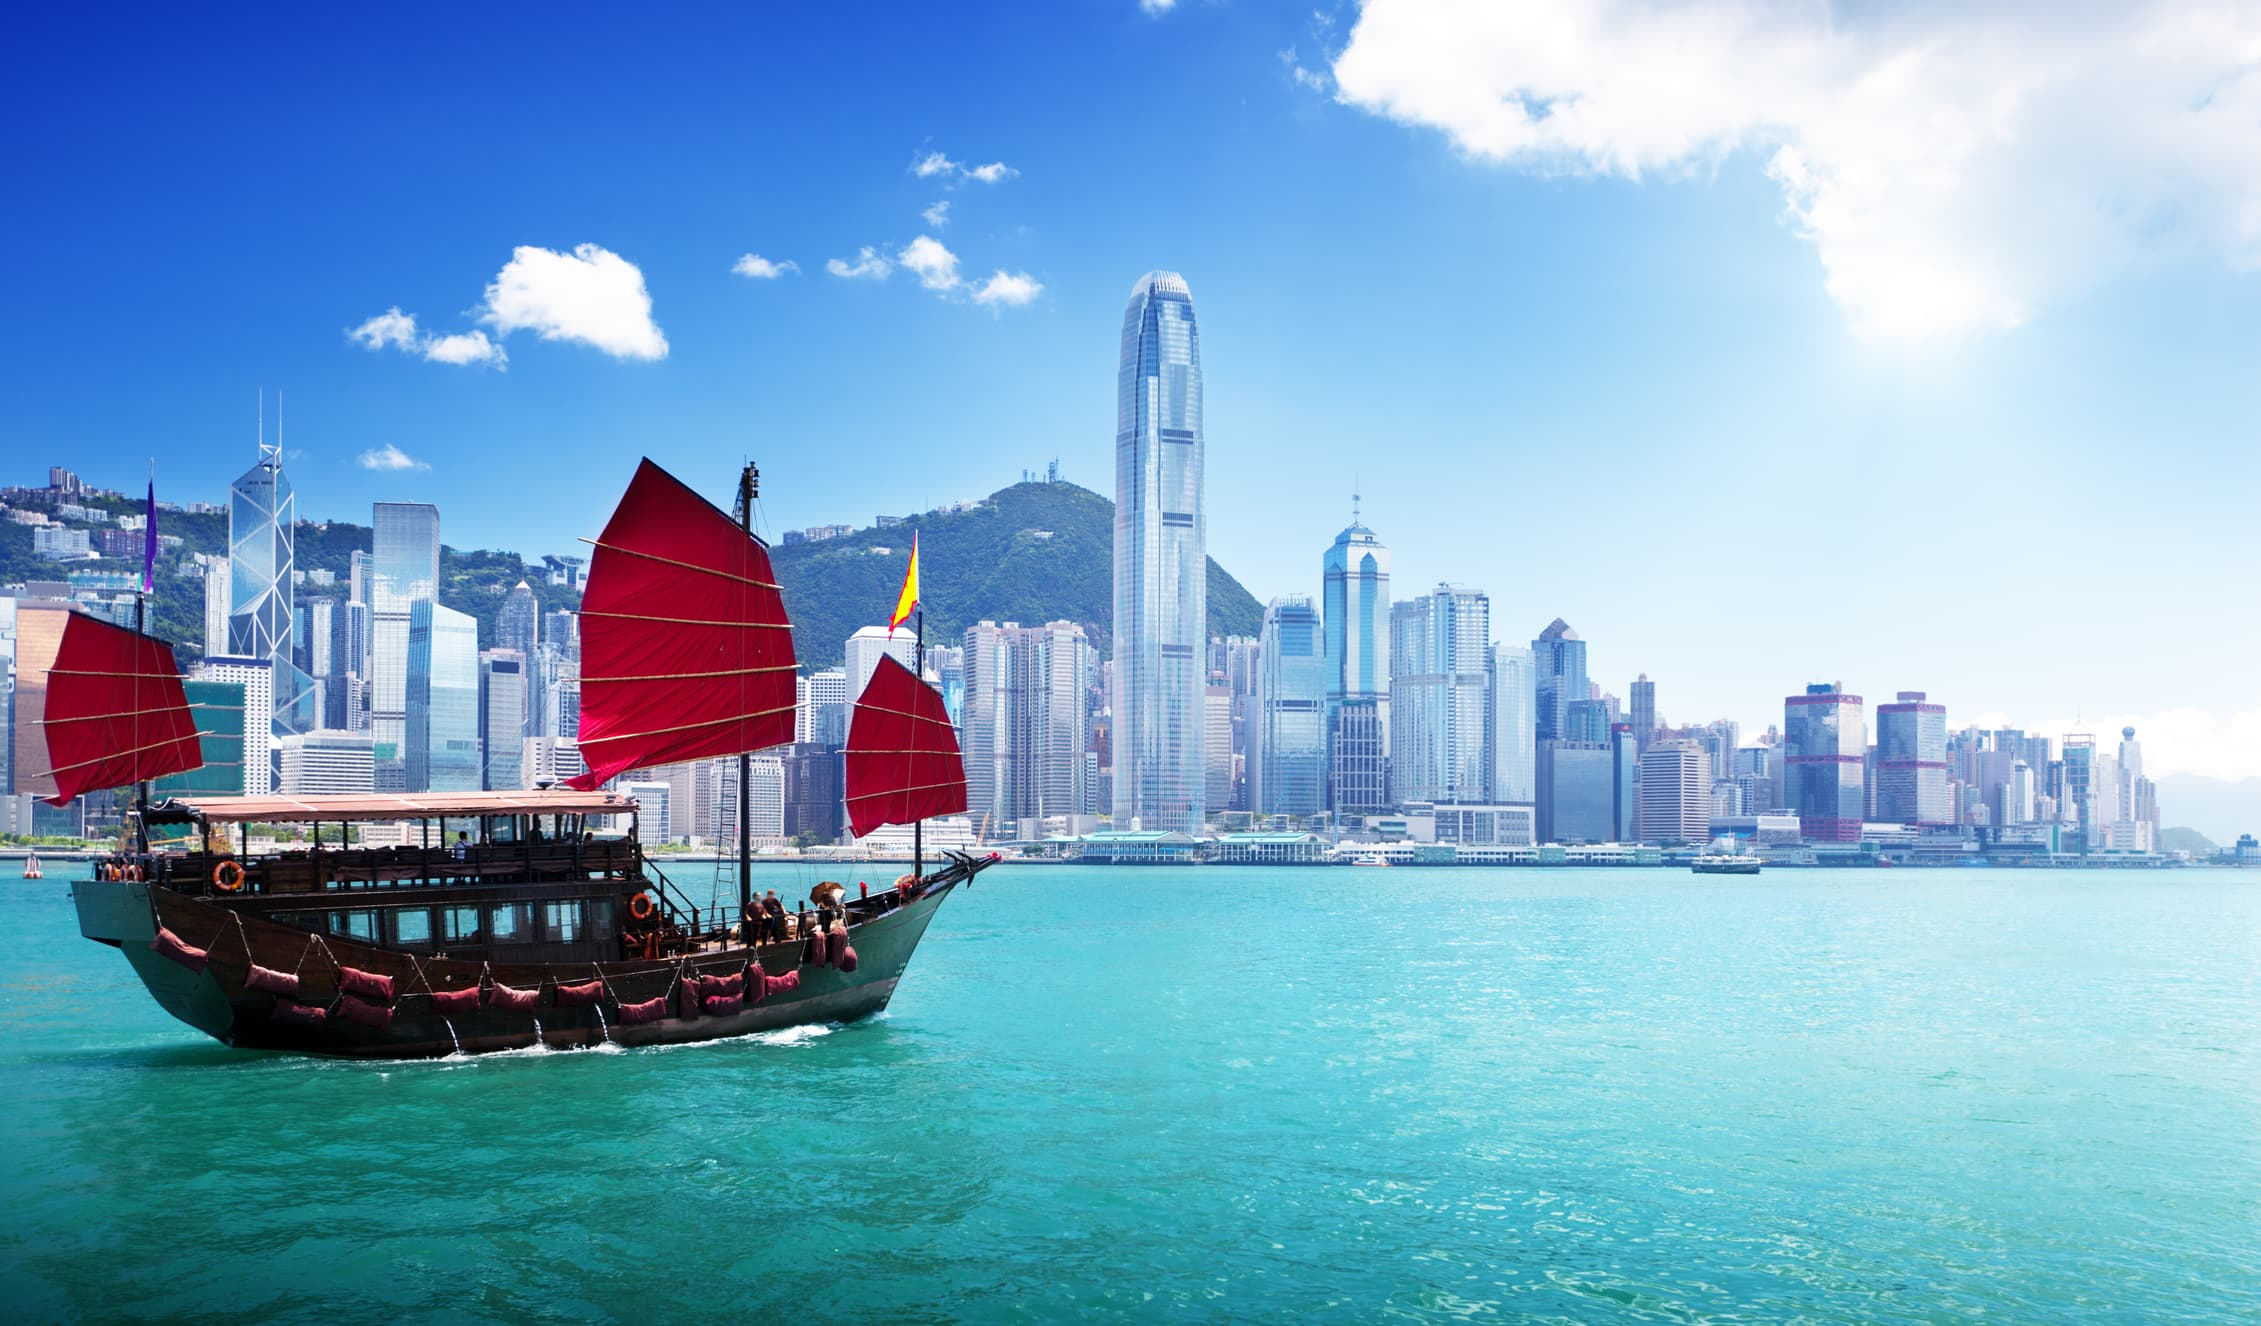 Los Angeles to Hong Kong NONSTOP RT Airfares on Hong Kong Airlines $427 (travel Jan-Mar 2018)